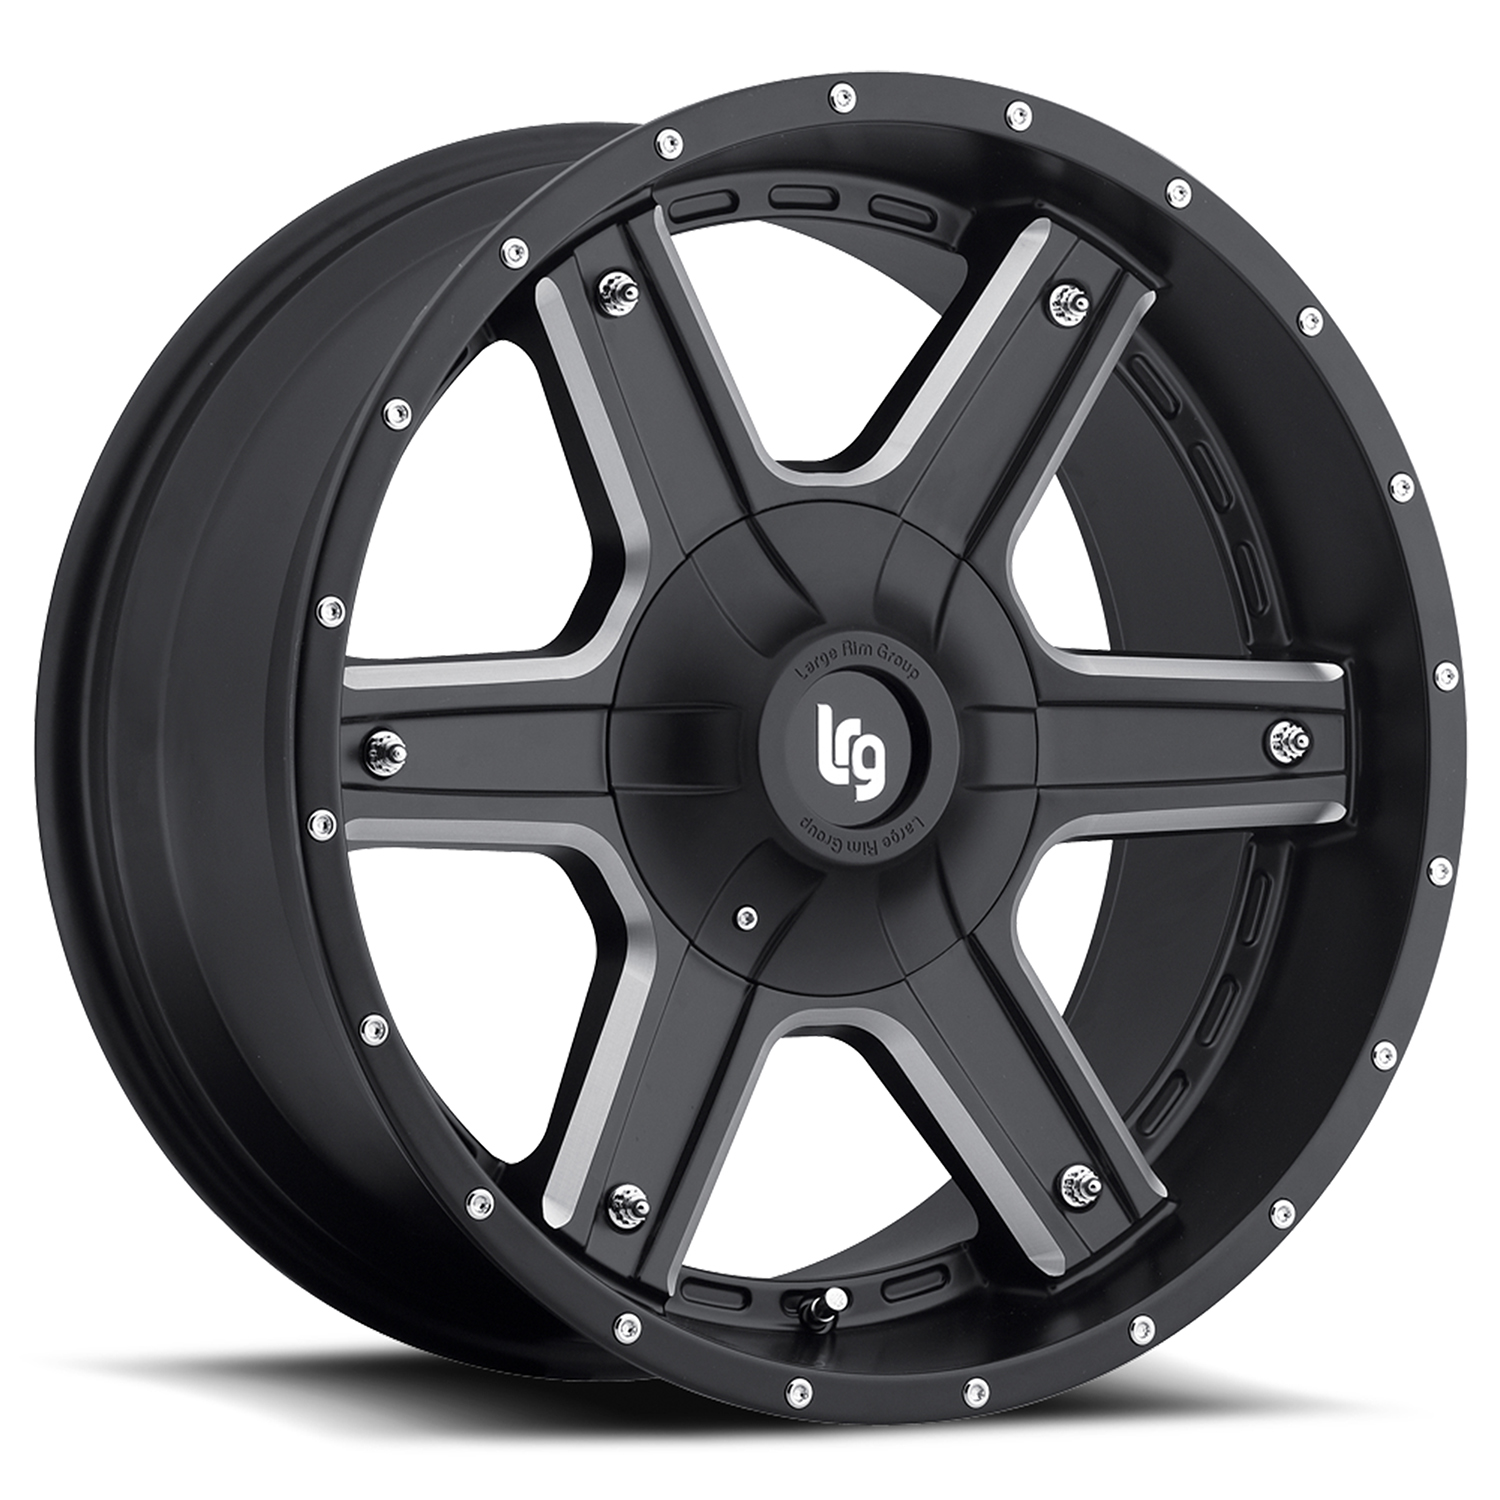 LRG Rims Series 101 Black Machined Wheels